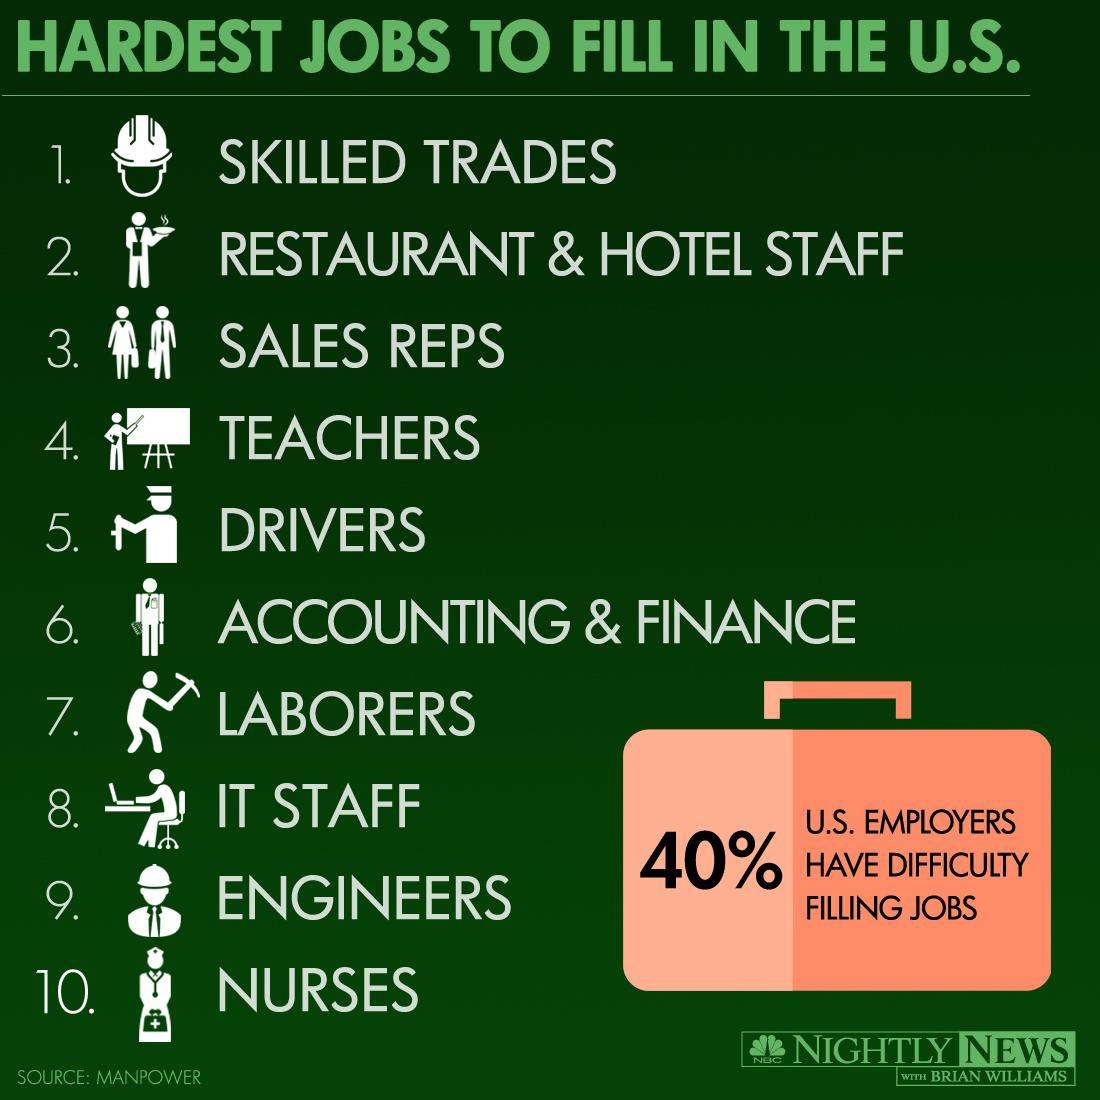 Top 10 Hardest Jobs To Fill In 2014